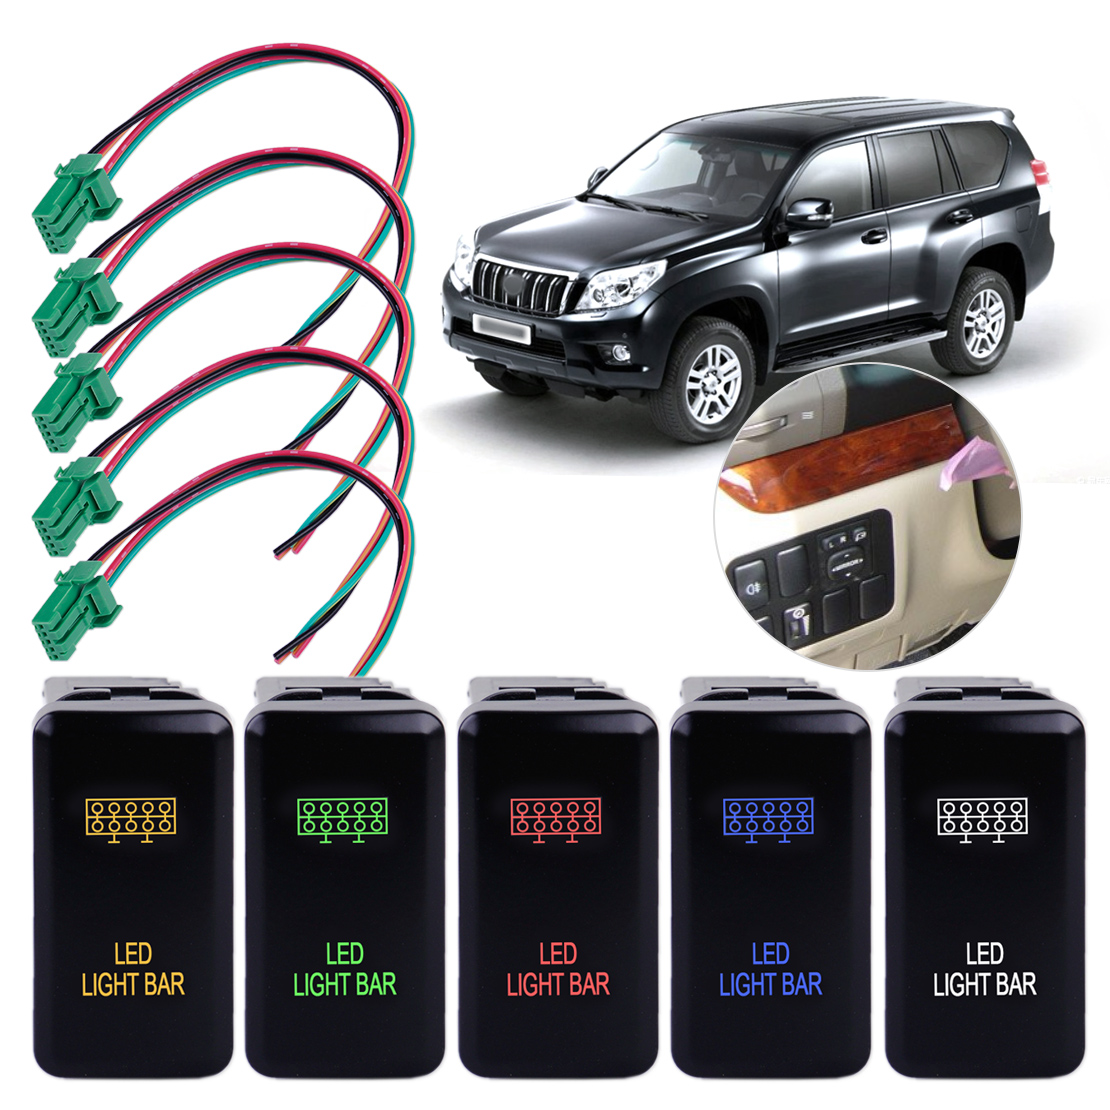 Drl Wiring Diagram Google Search Fj Cruiser T For Brake Light Switch Citall 12v Led Fog Push Button With Harness Wire Fit Toyota